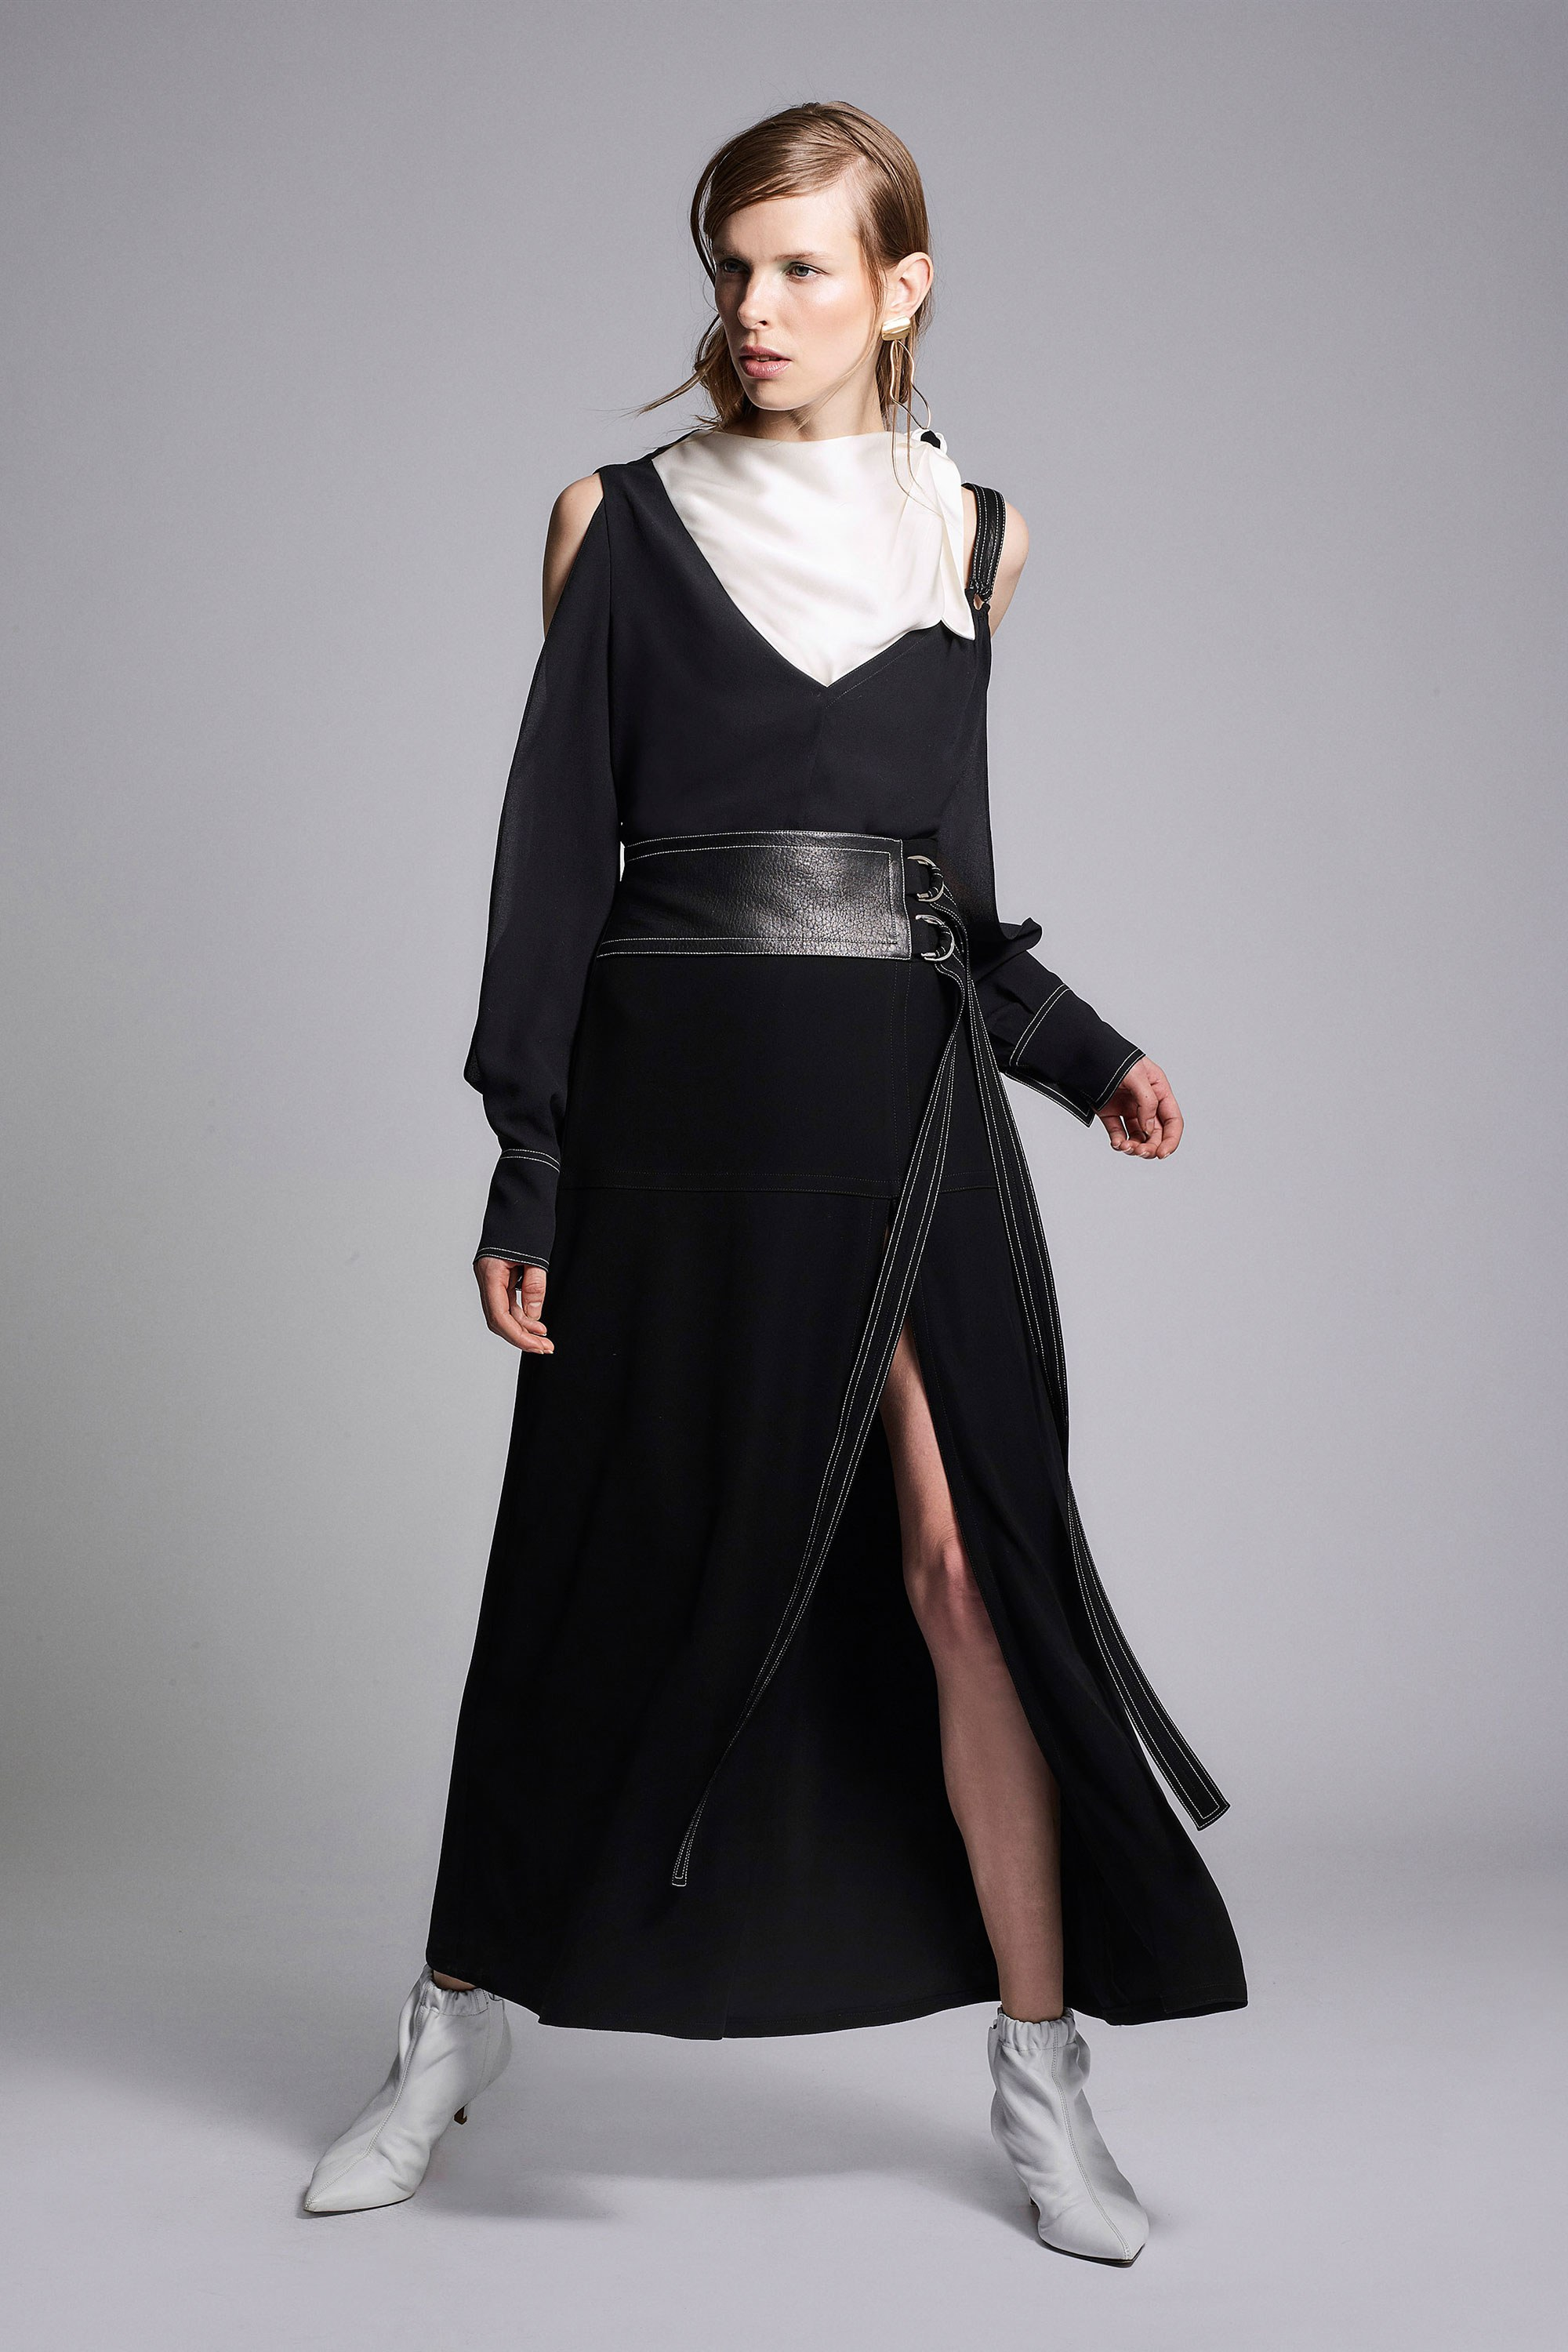 Yigal Azrouël Fall 2018 Ready-to-Wear